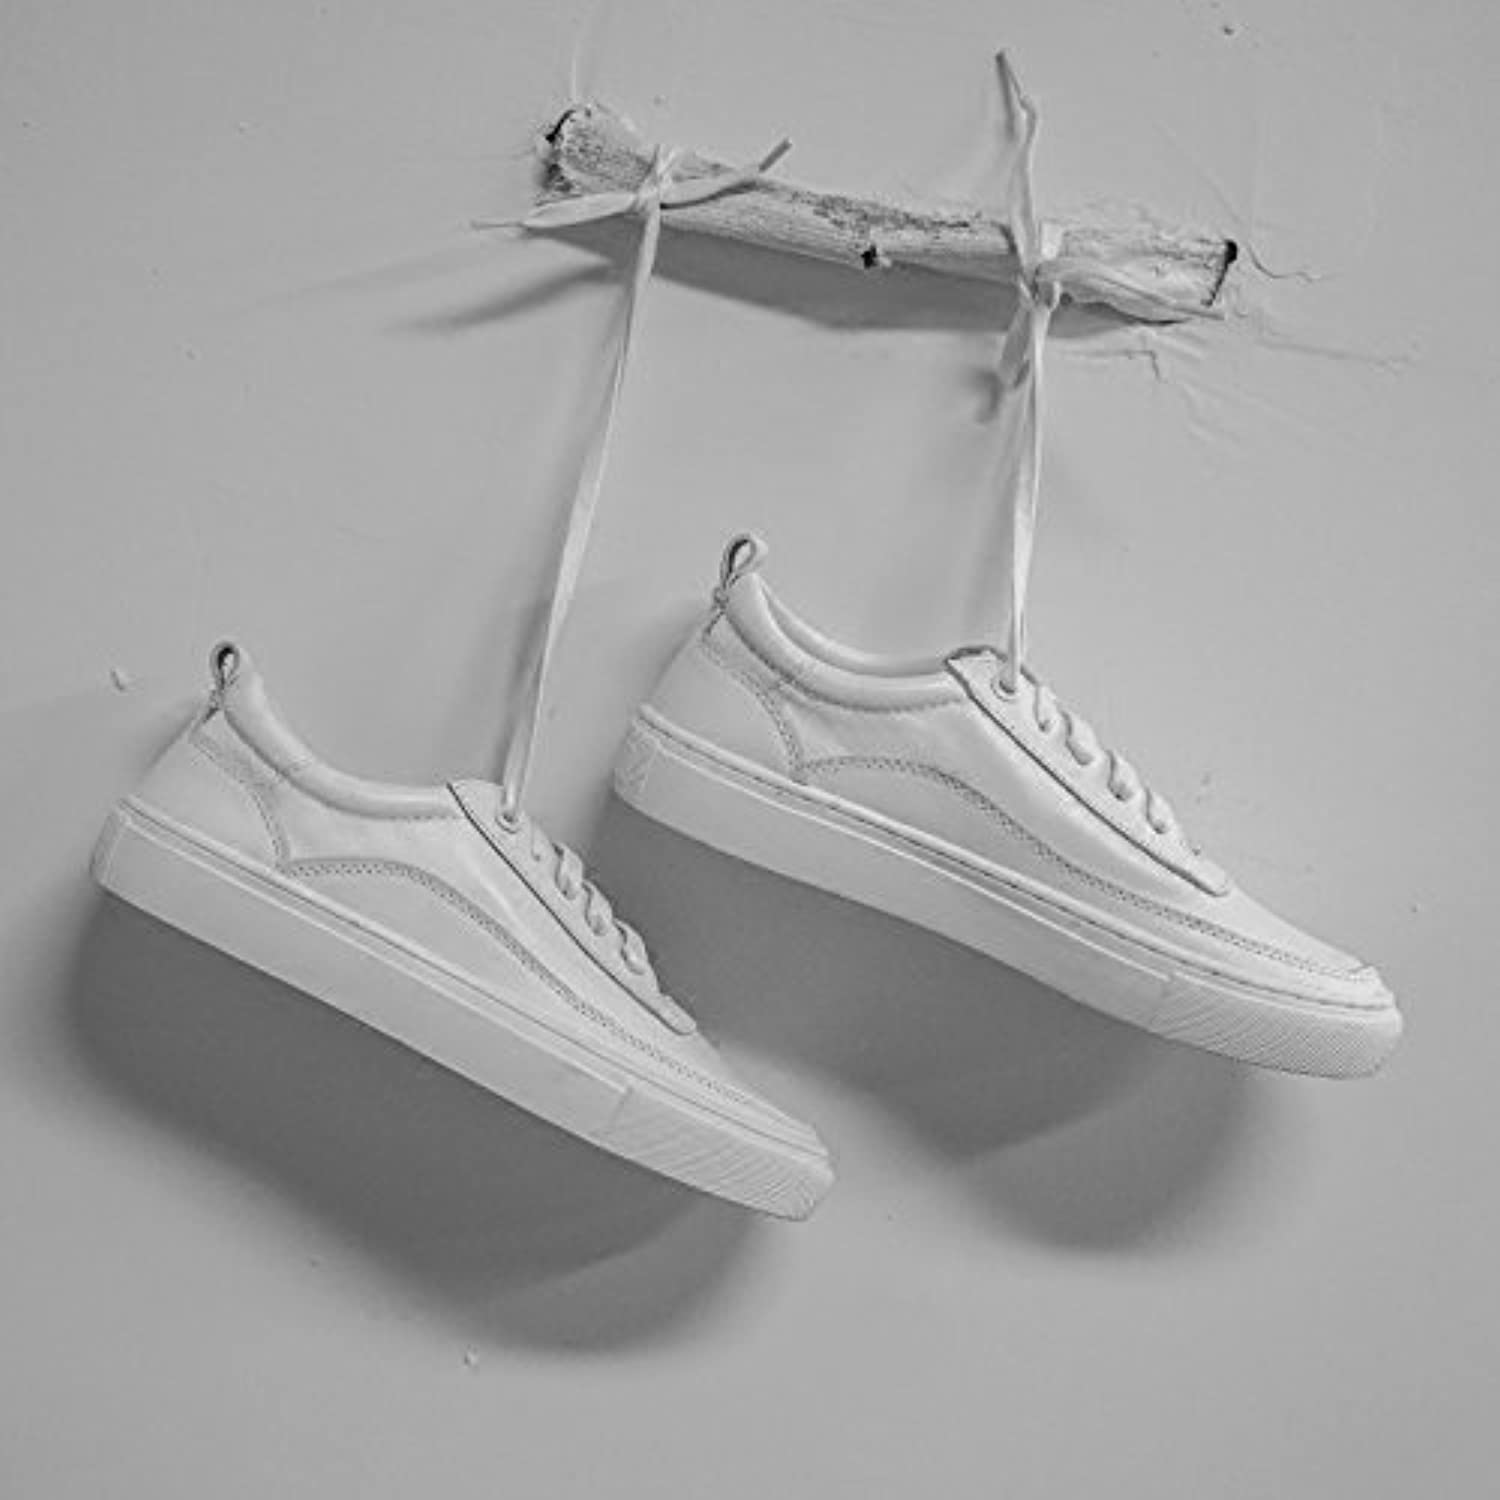 GUNAINDMXShoes/Sports/Casual Shoes Shoes/New/All-Match,Thirty-Eight,White  Venta de calzado deportivo de moda en línea